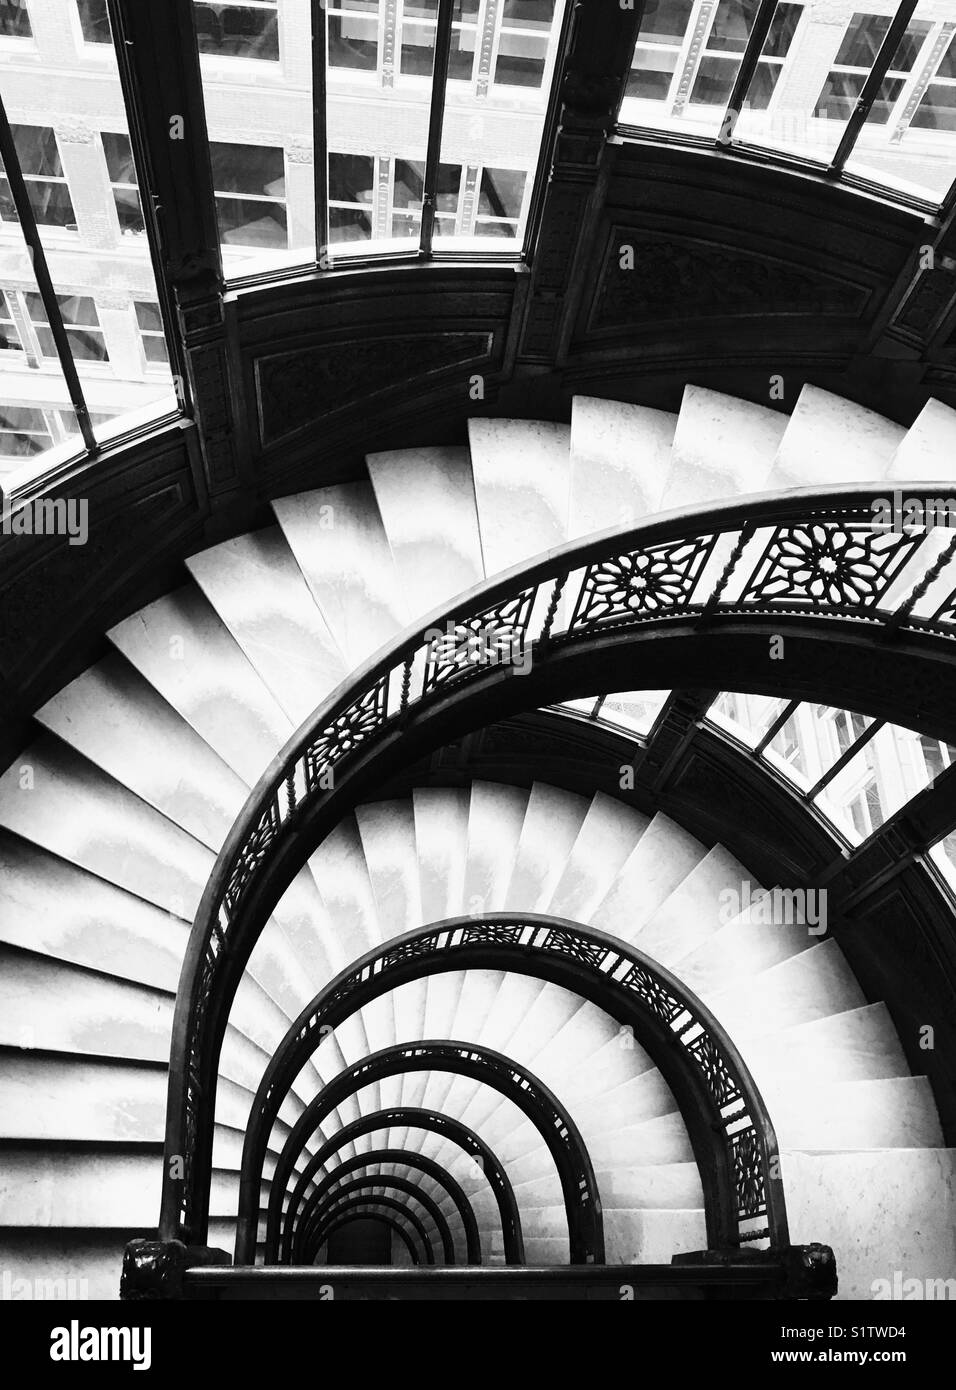 Superbe Spiral Staircase Of The Rookery Building In Chicago, IL